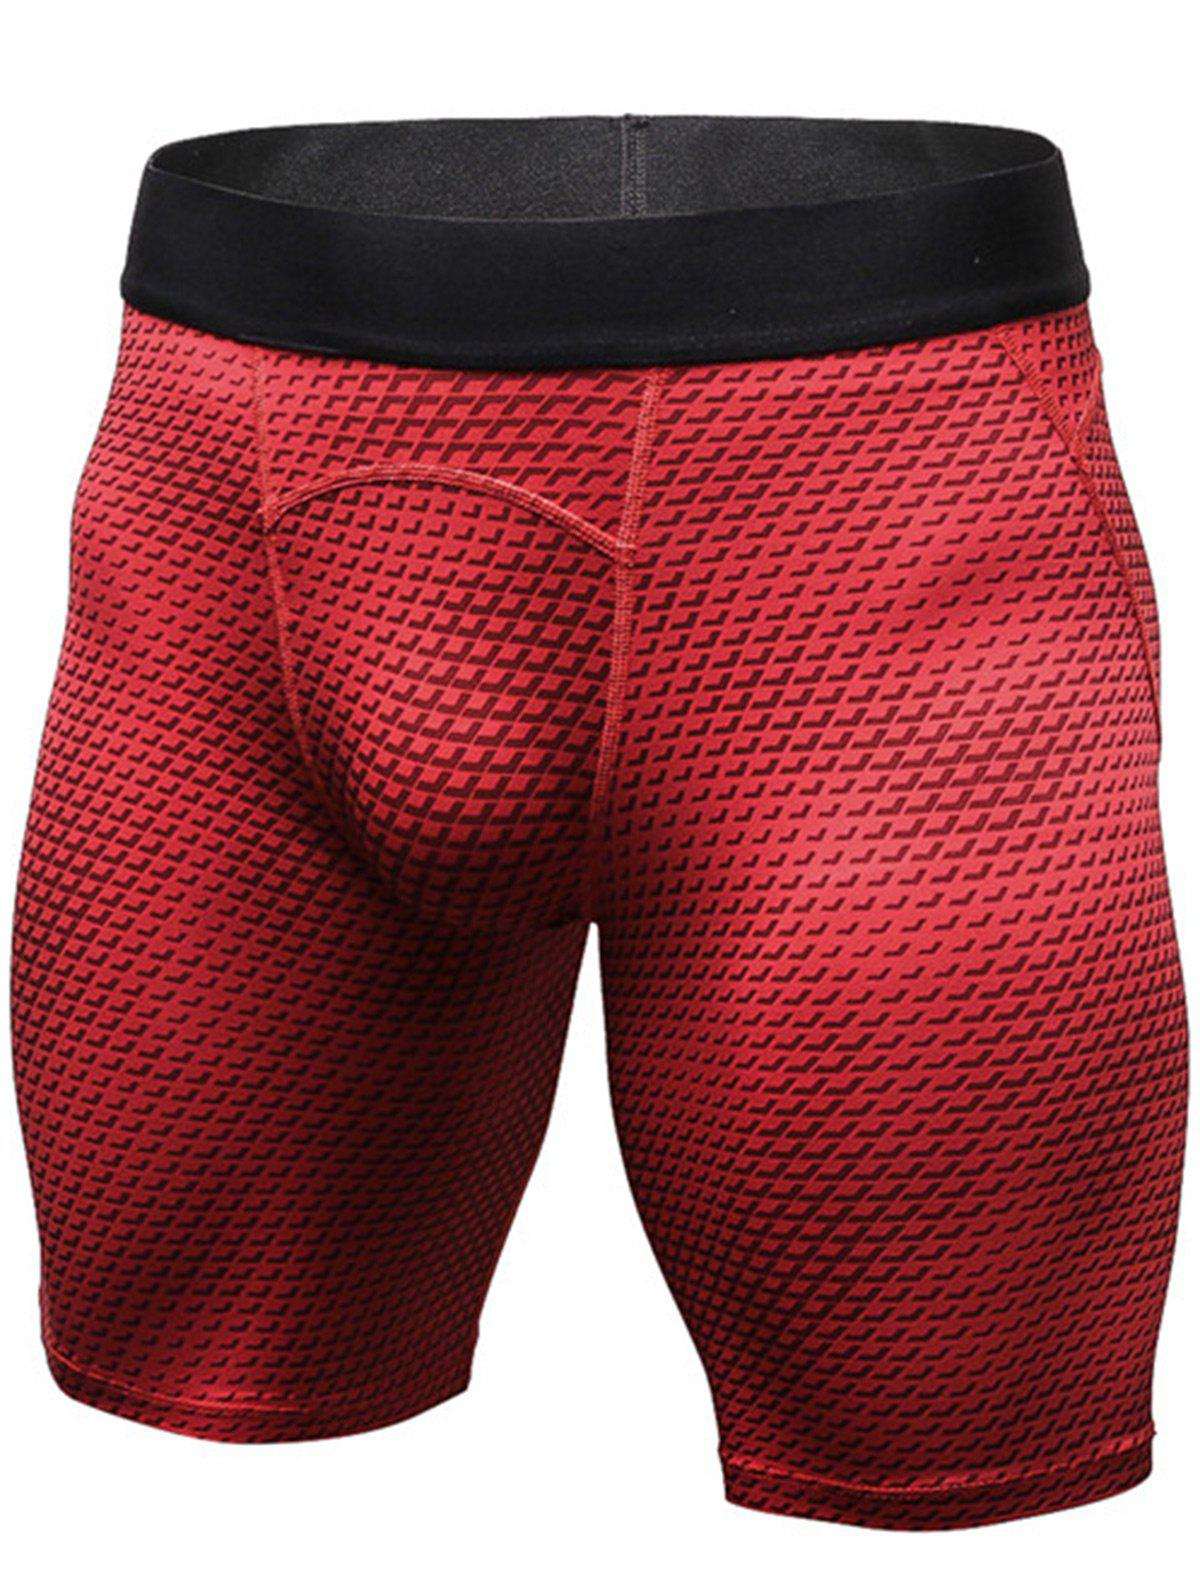 3D Geometric Print Fitted Quick Dry Gym Shorts - RED 2XL